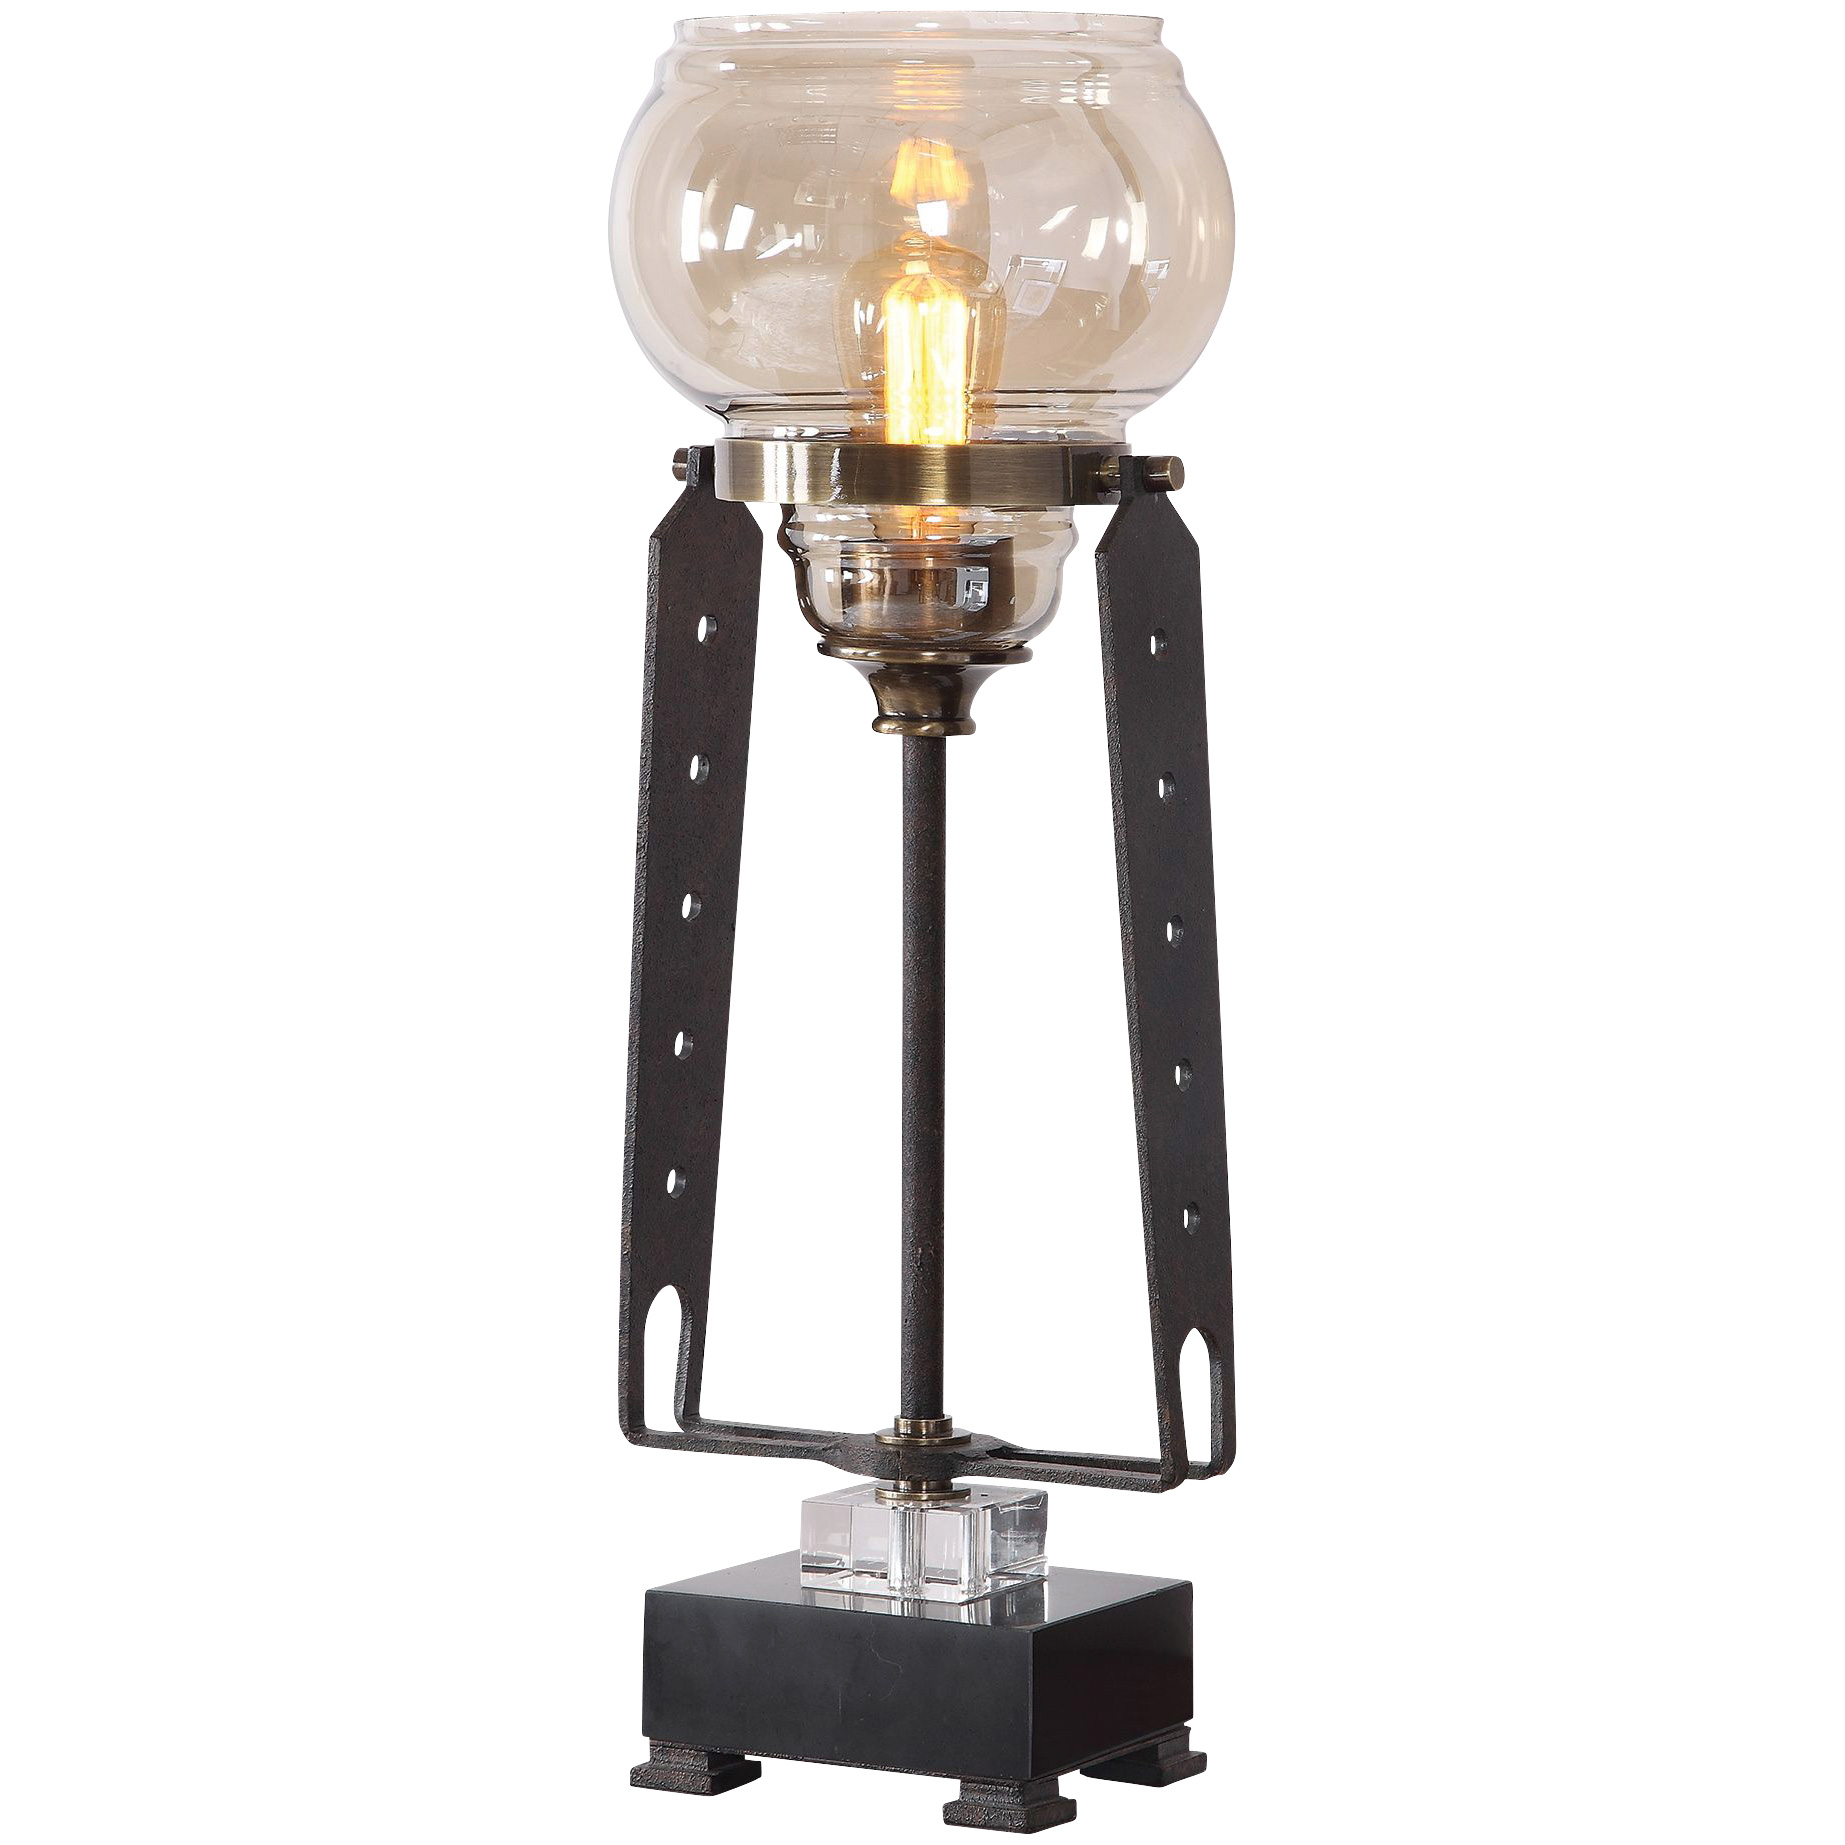 Uttermost | Curie Iron Industrial Accent Lamp